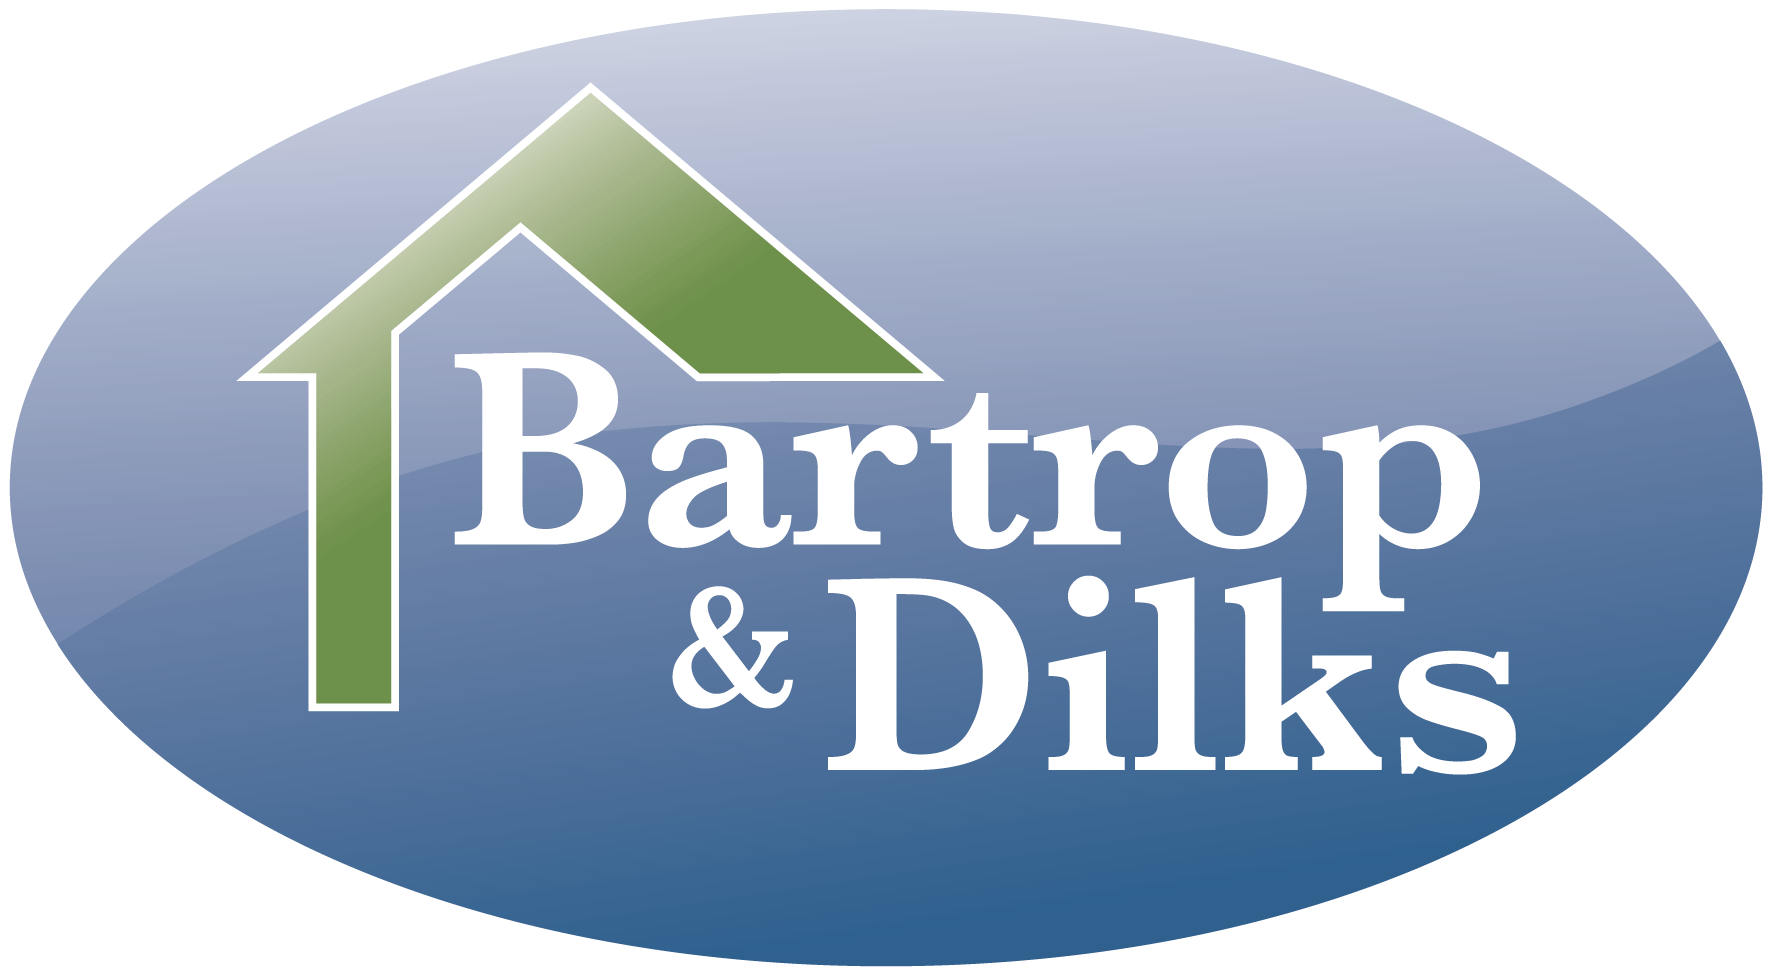 Bartrop & Dilks - Worksop's Number One Letting Estate Agent